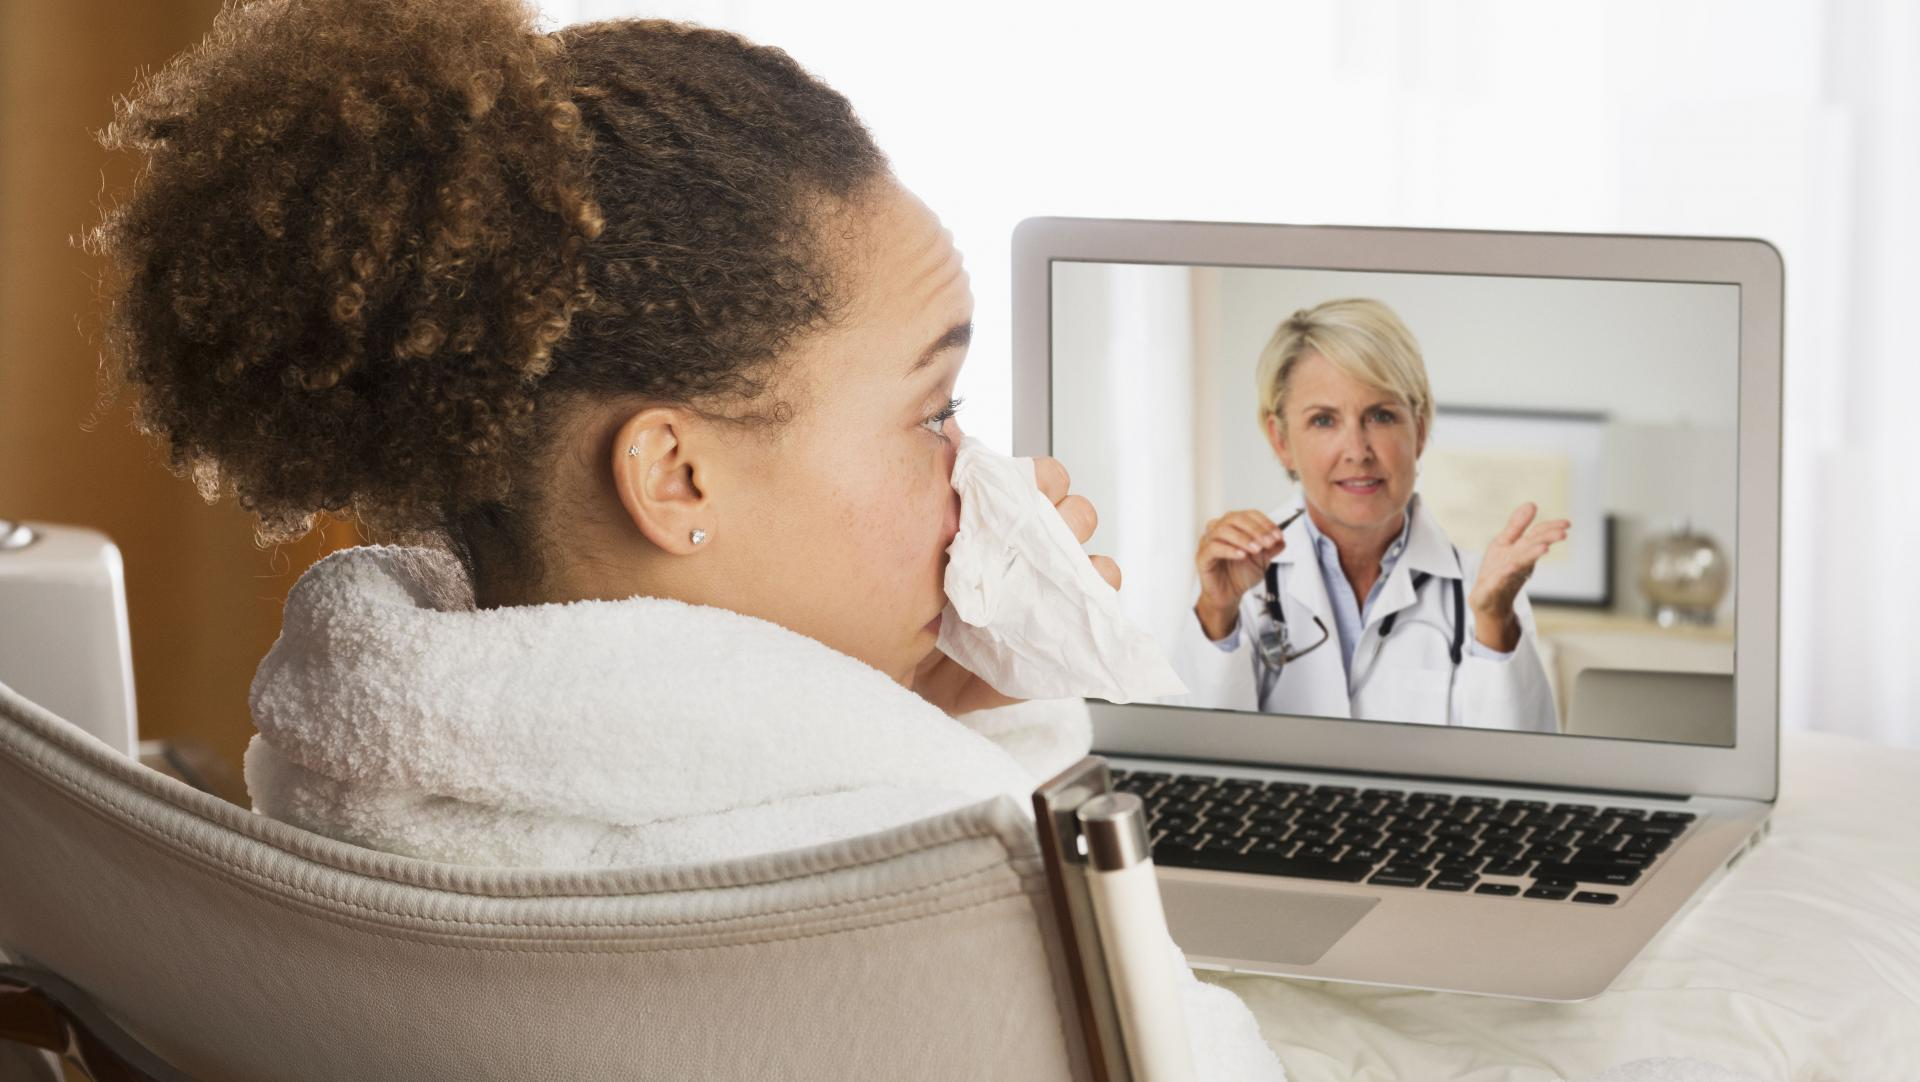 Patient with a cold having a video chat with a health provider from home